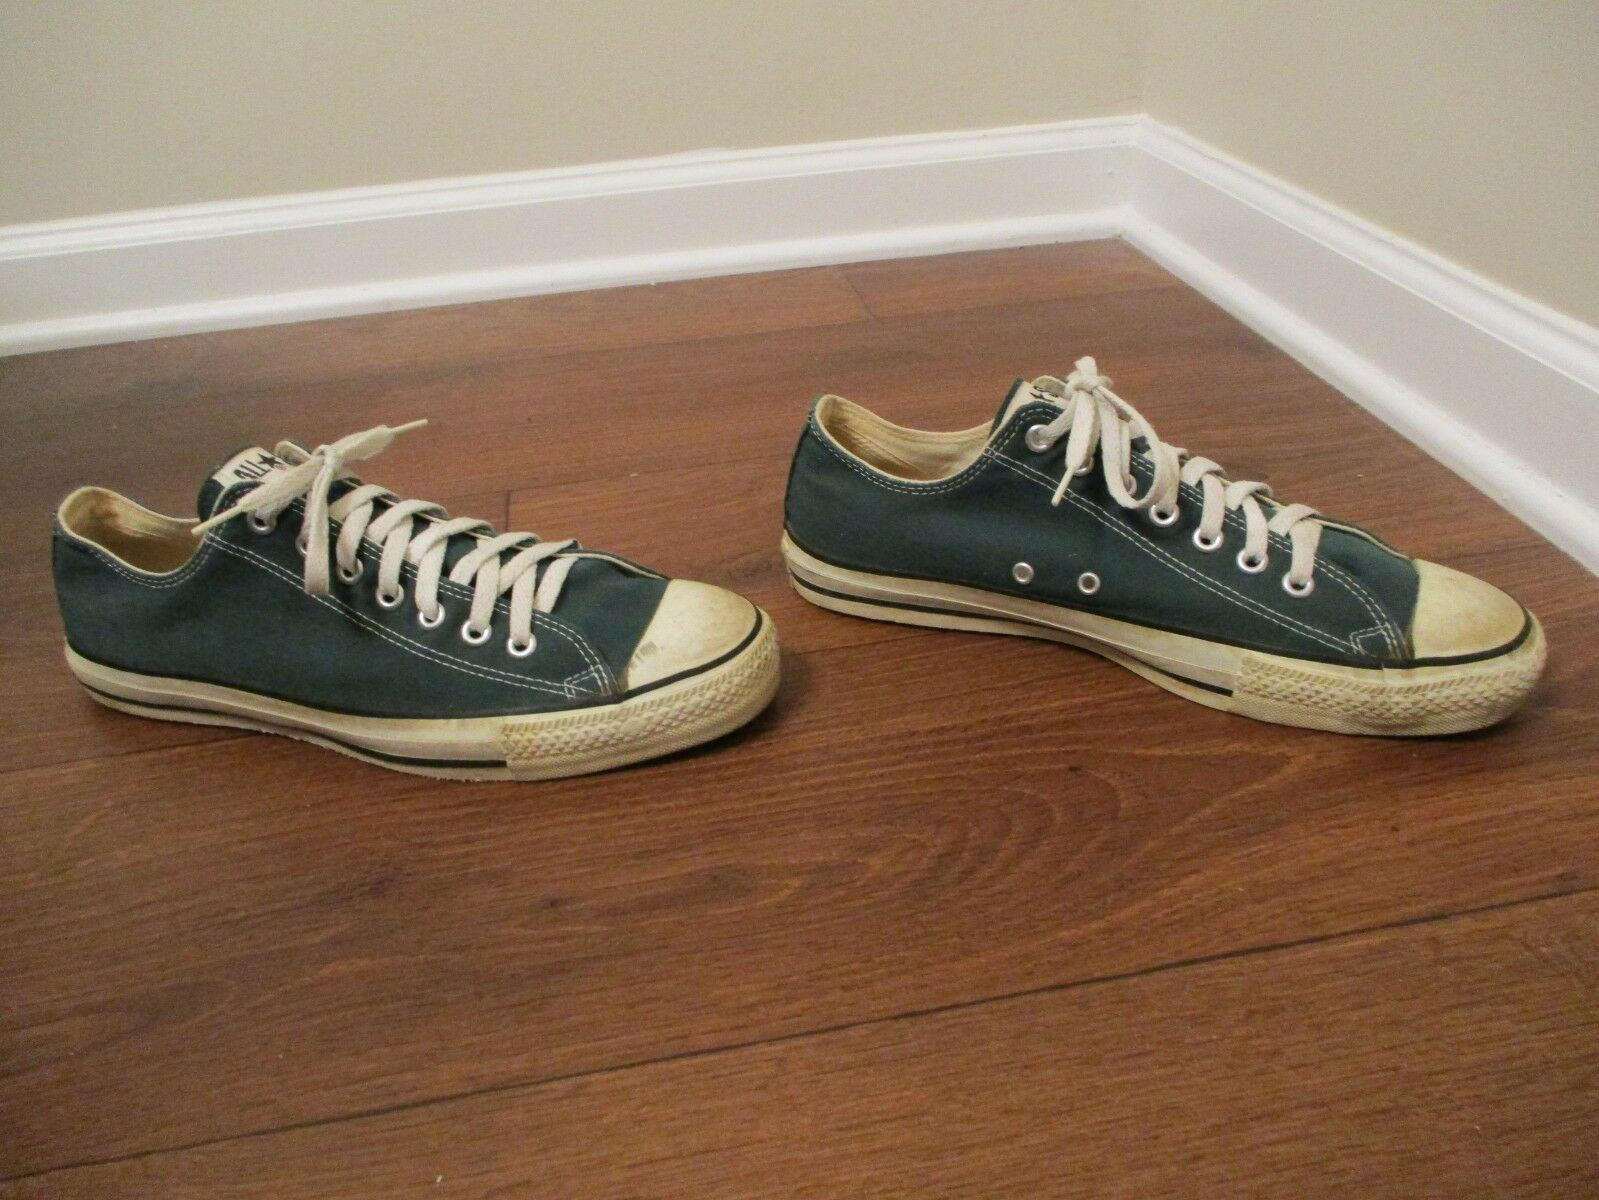 Made in USA Used Sz 11 Fit Like 11.5 - 12 Converse Chuck Taylor All Star shoes